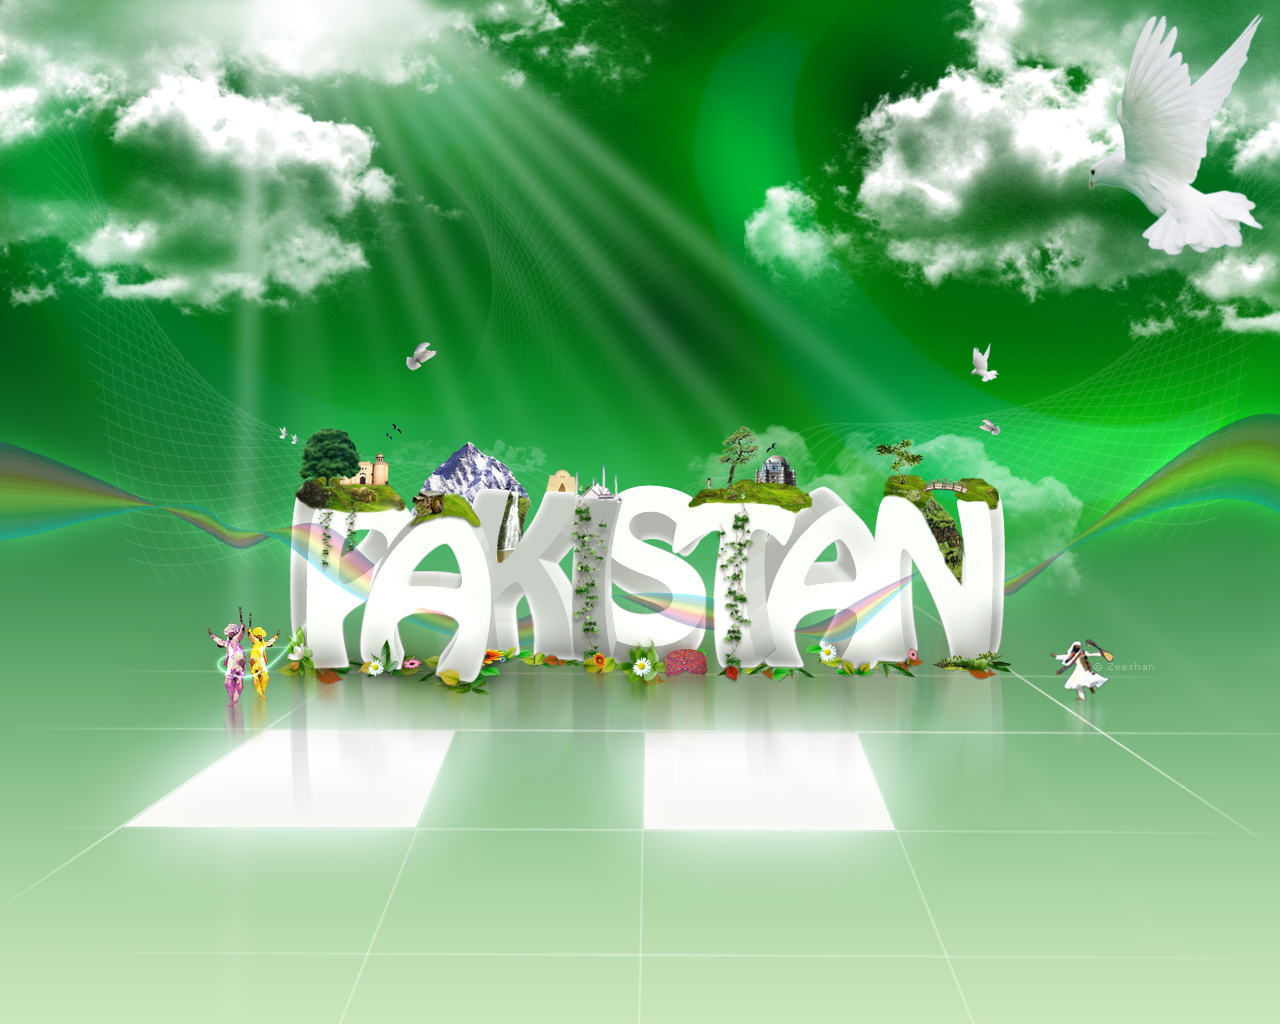 pakistan day wallpapers gallery 23 march 2012 pakistan day wallpapers 1280x1024